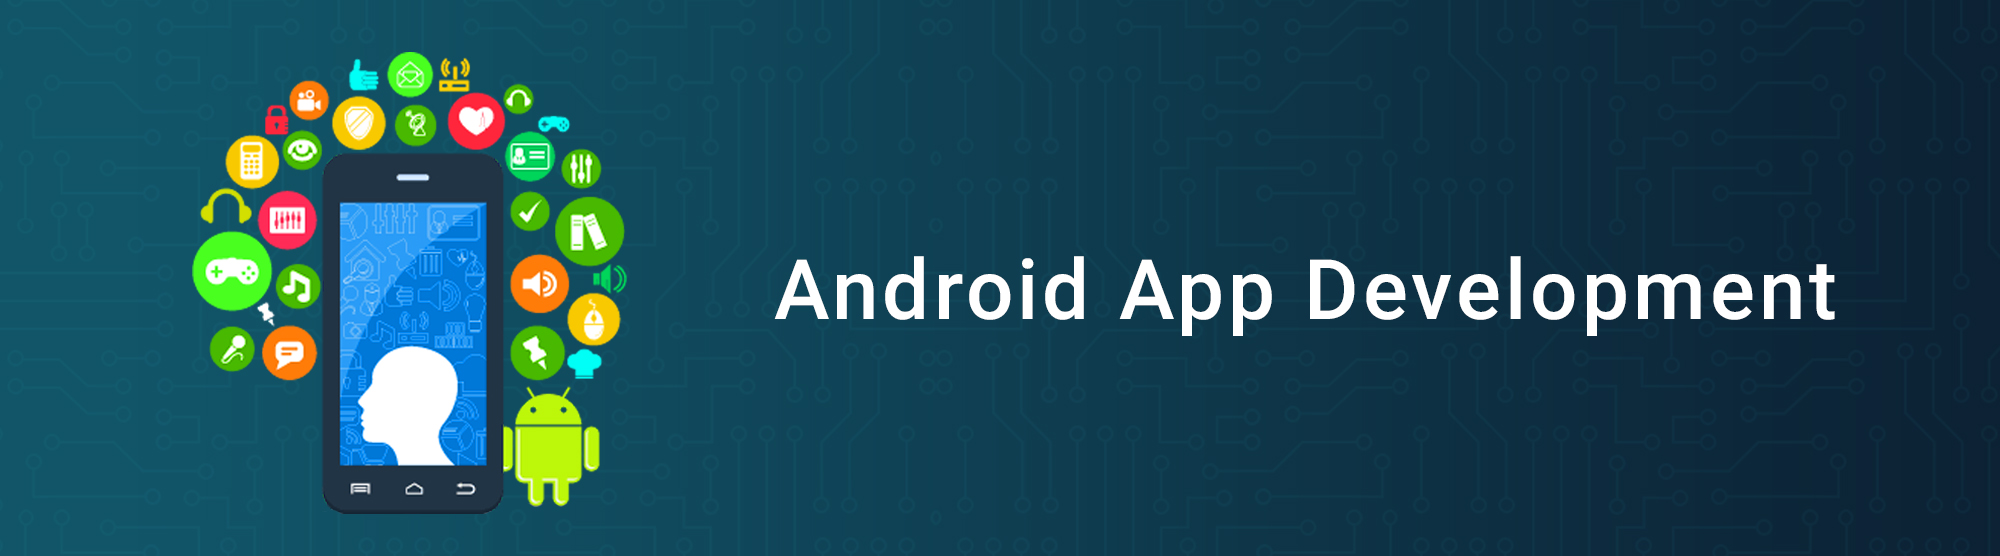 Android app development